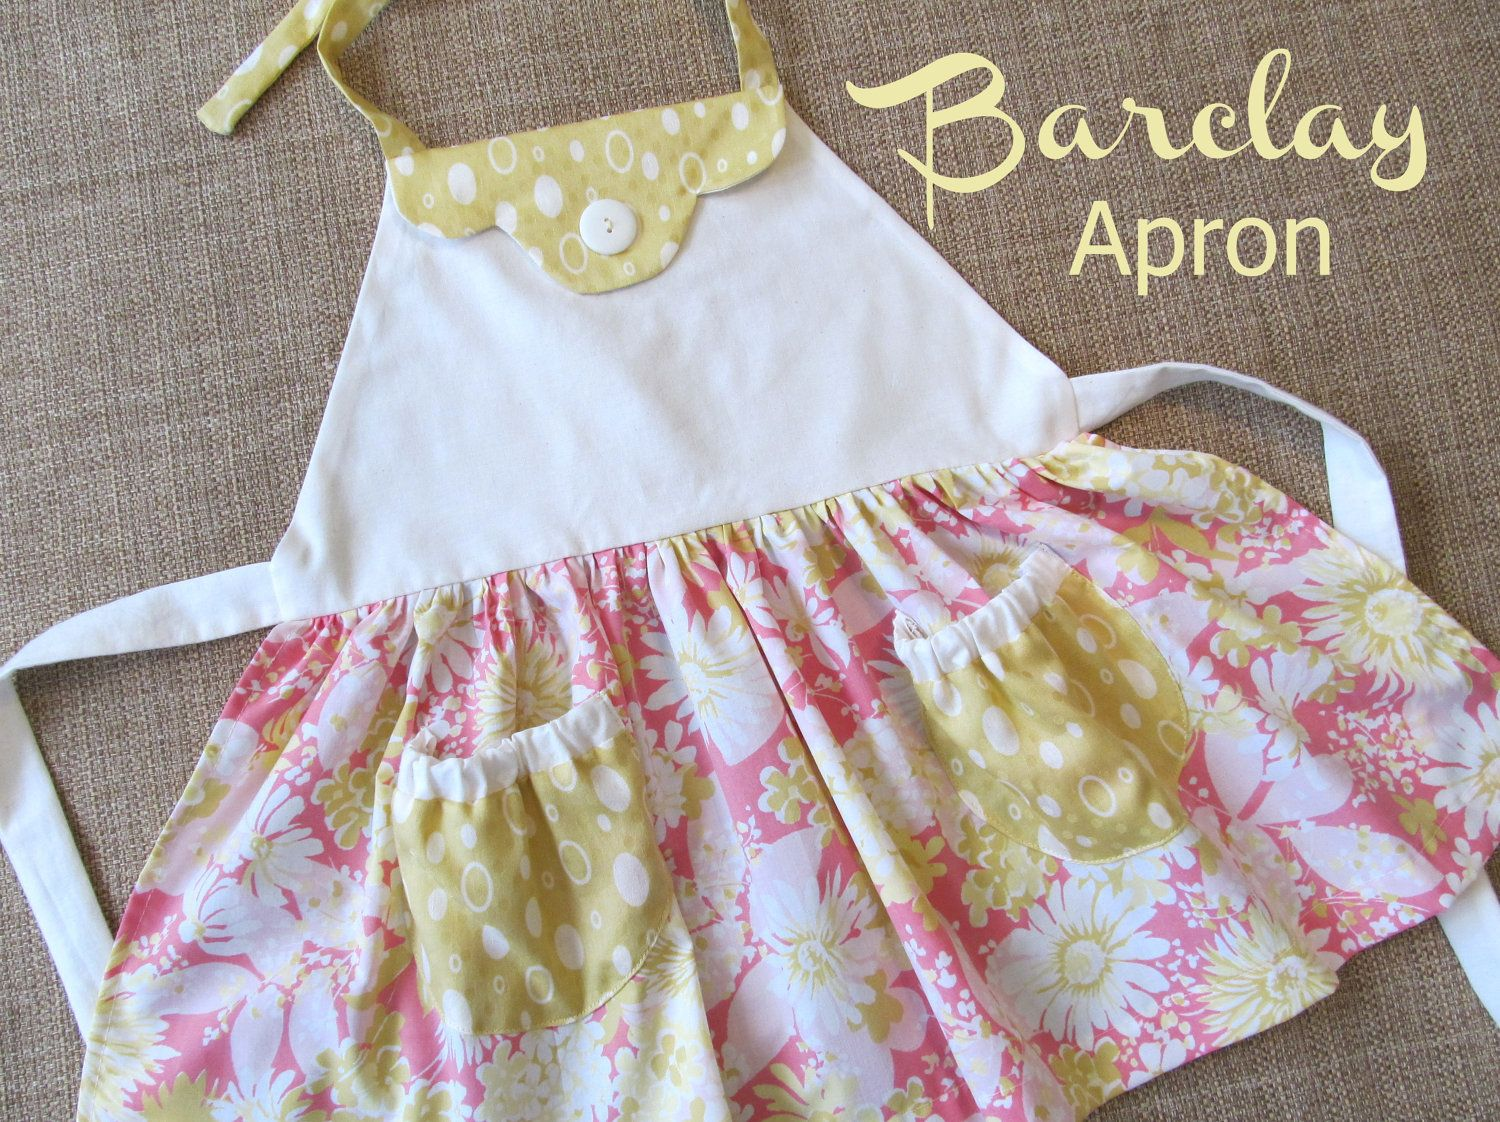 Barclay kitschy apron girls sewing pattern pdf pattern toddler barclay kitschy apron girls sewing pattern pdf pattern toddler pattern all sizes 2 8 included jeuxipadfo Choice Image